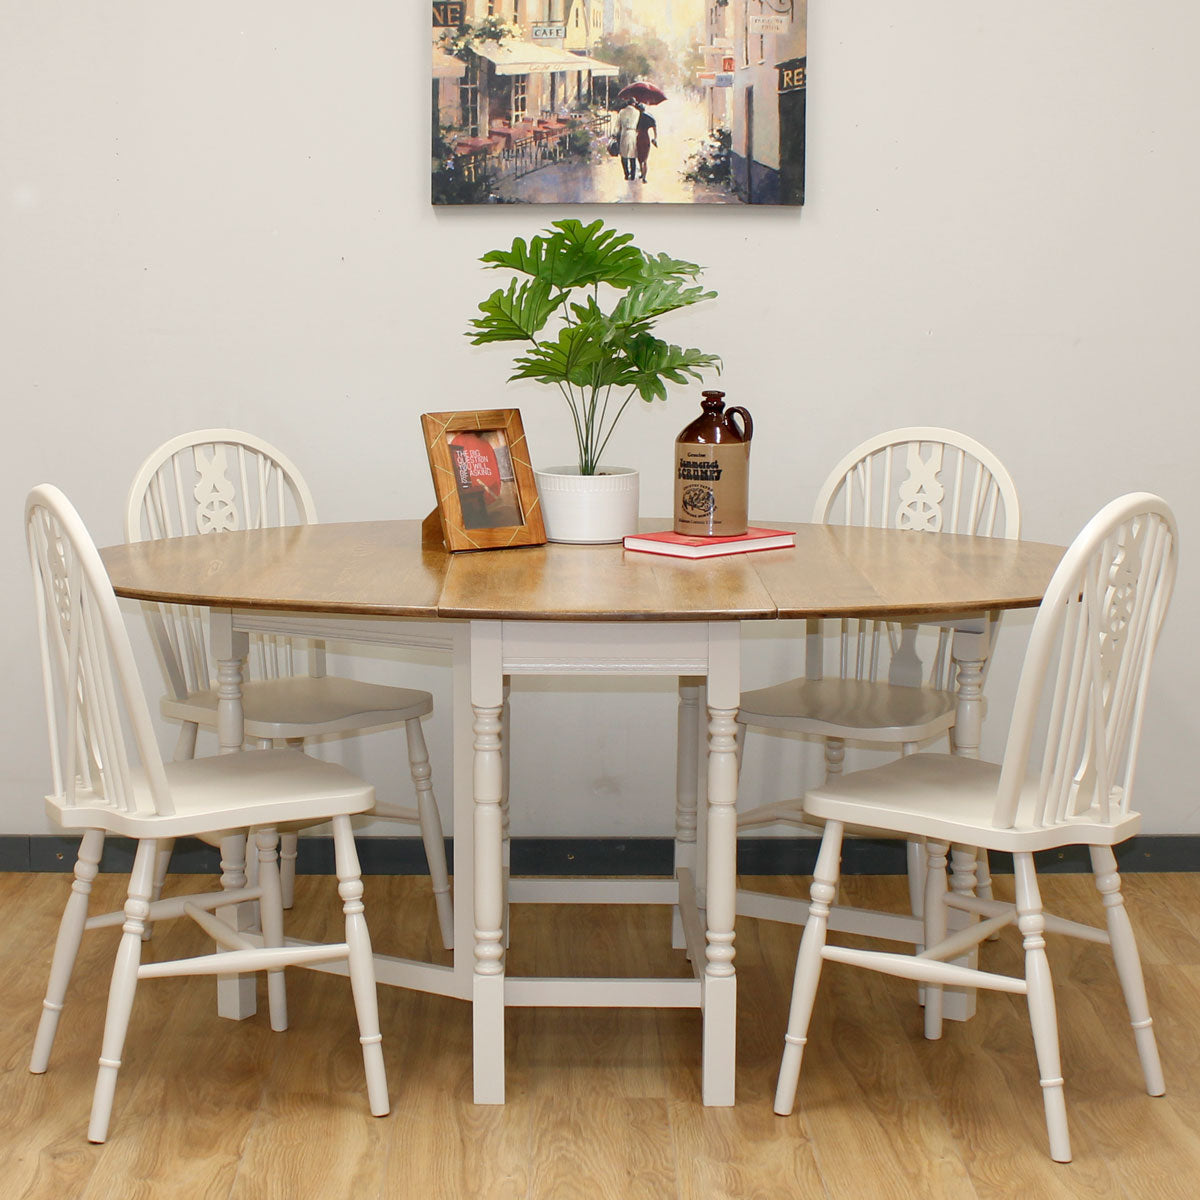 Vintage Painted Table & Chairs